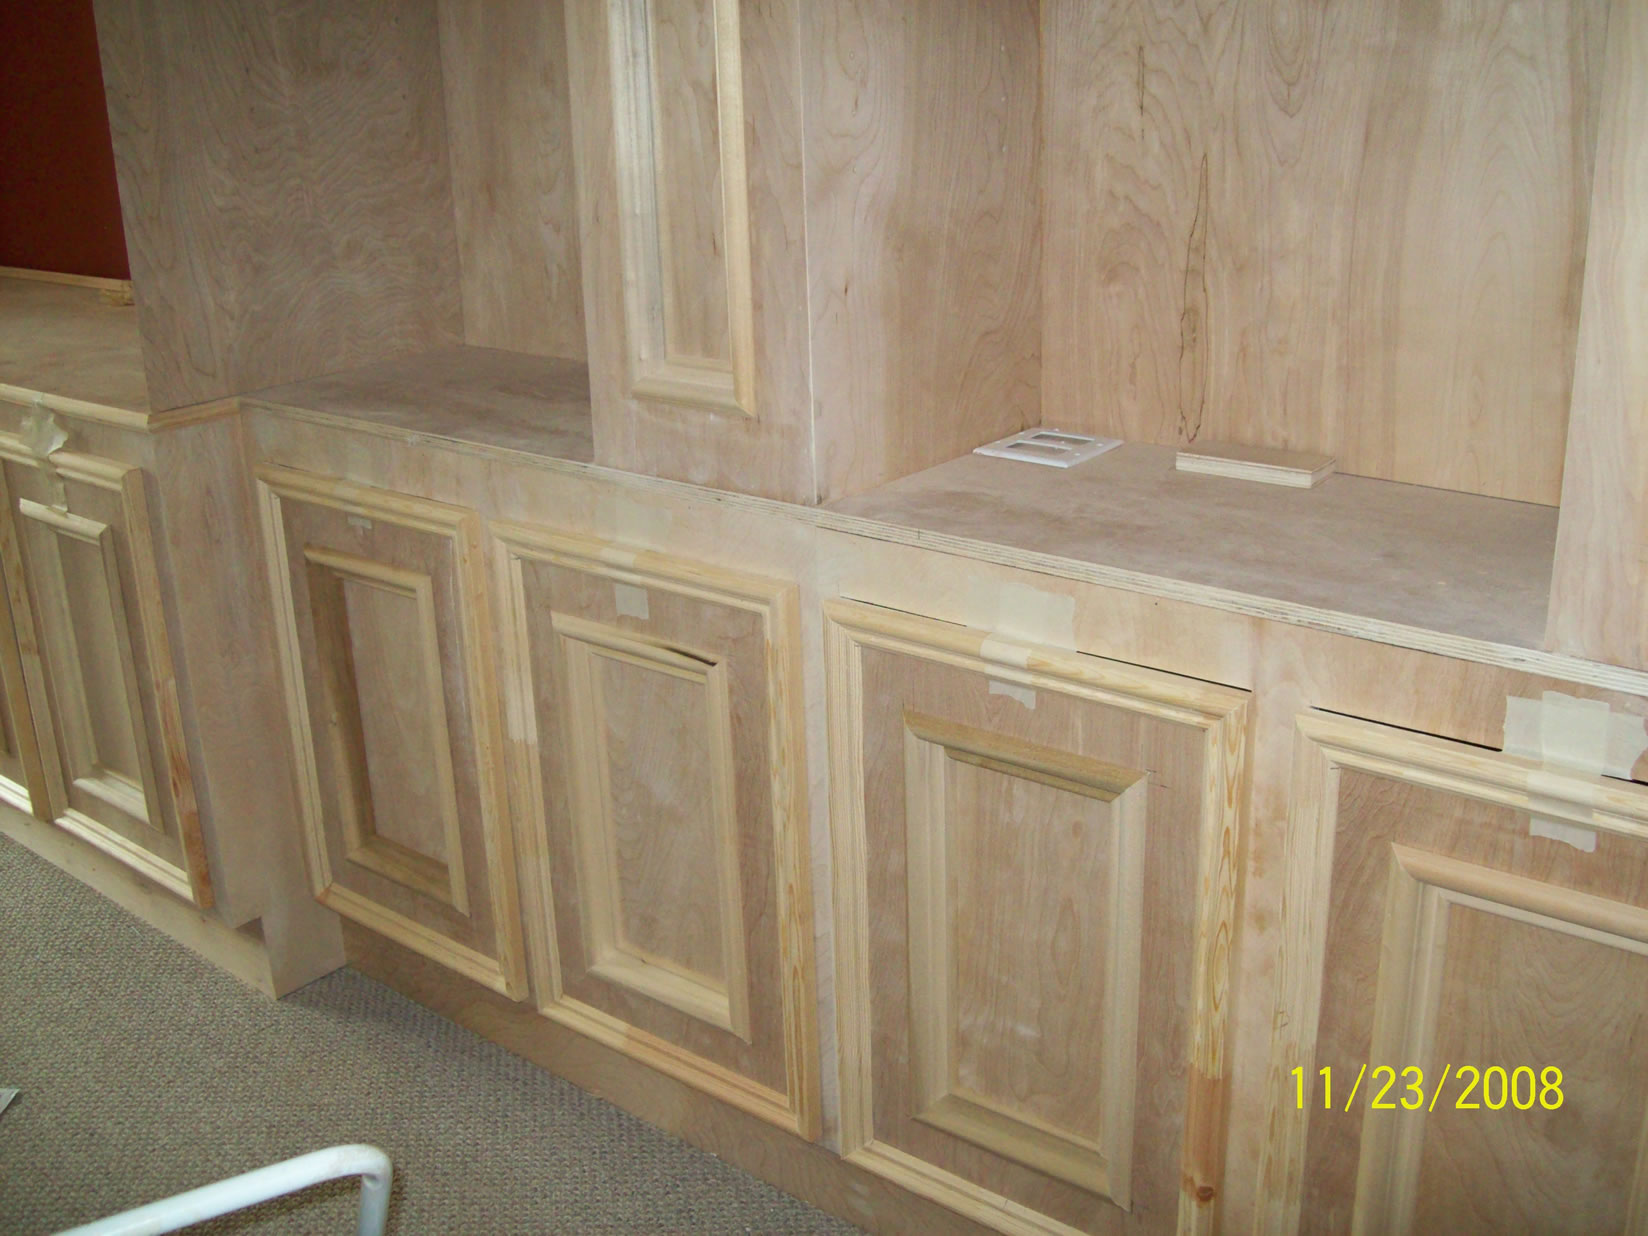 cabinets tx edit antonio cabinet custom dm kitchen san remodeling